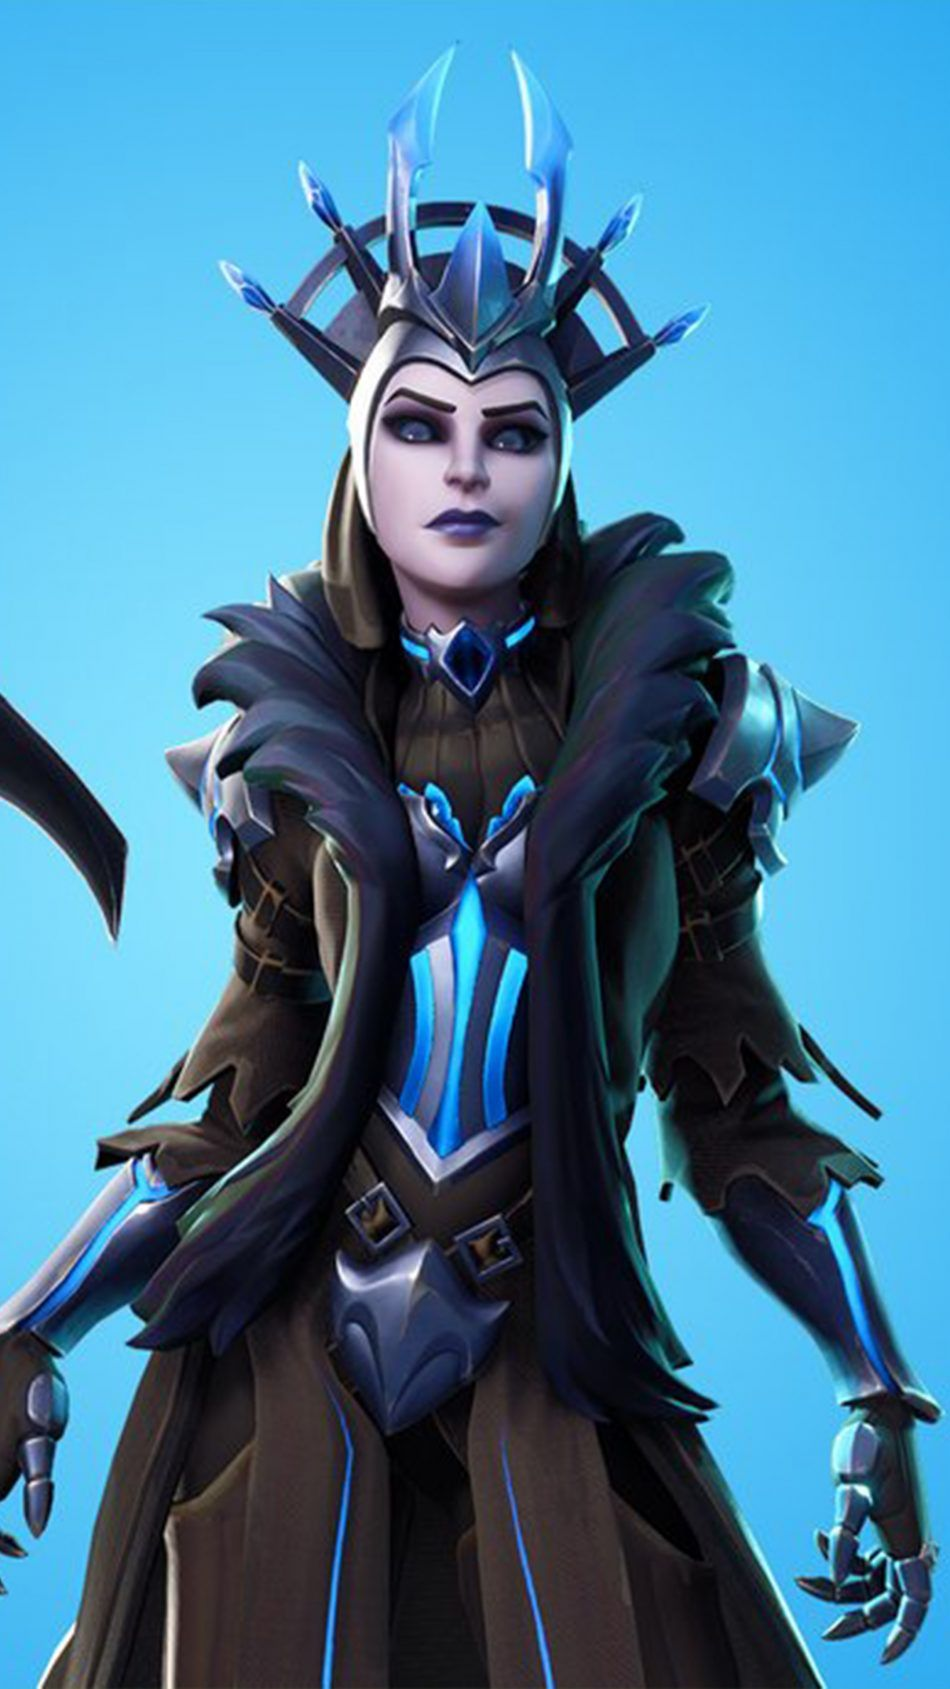 Ice Queen Fortnite Fortnite Wallpapers Ice Queen Ice Gaming